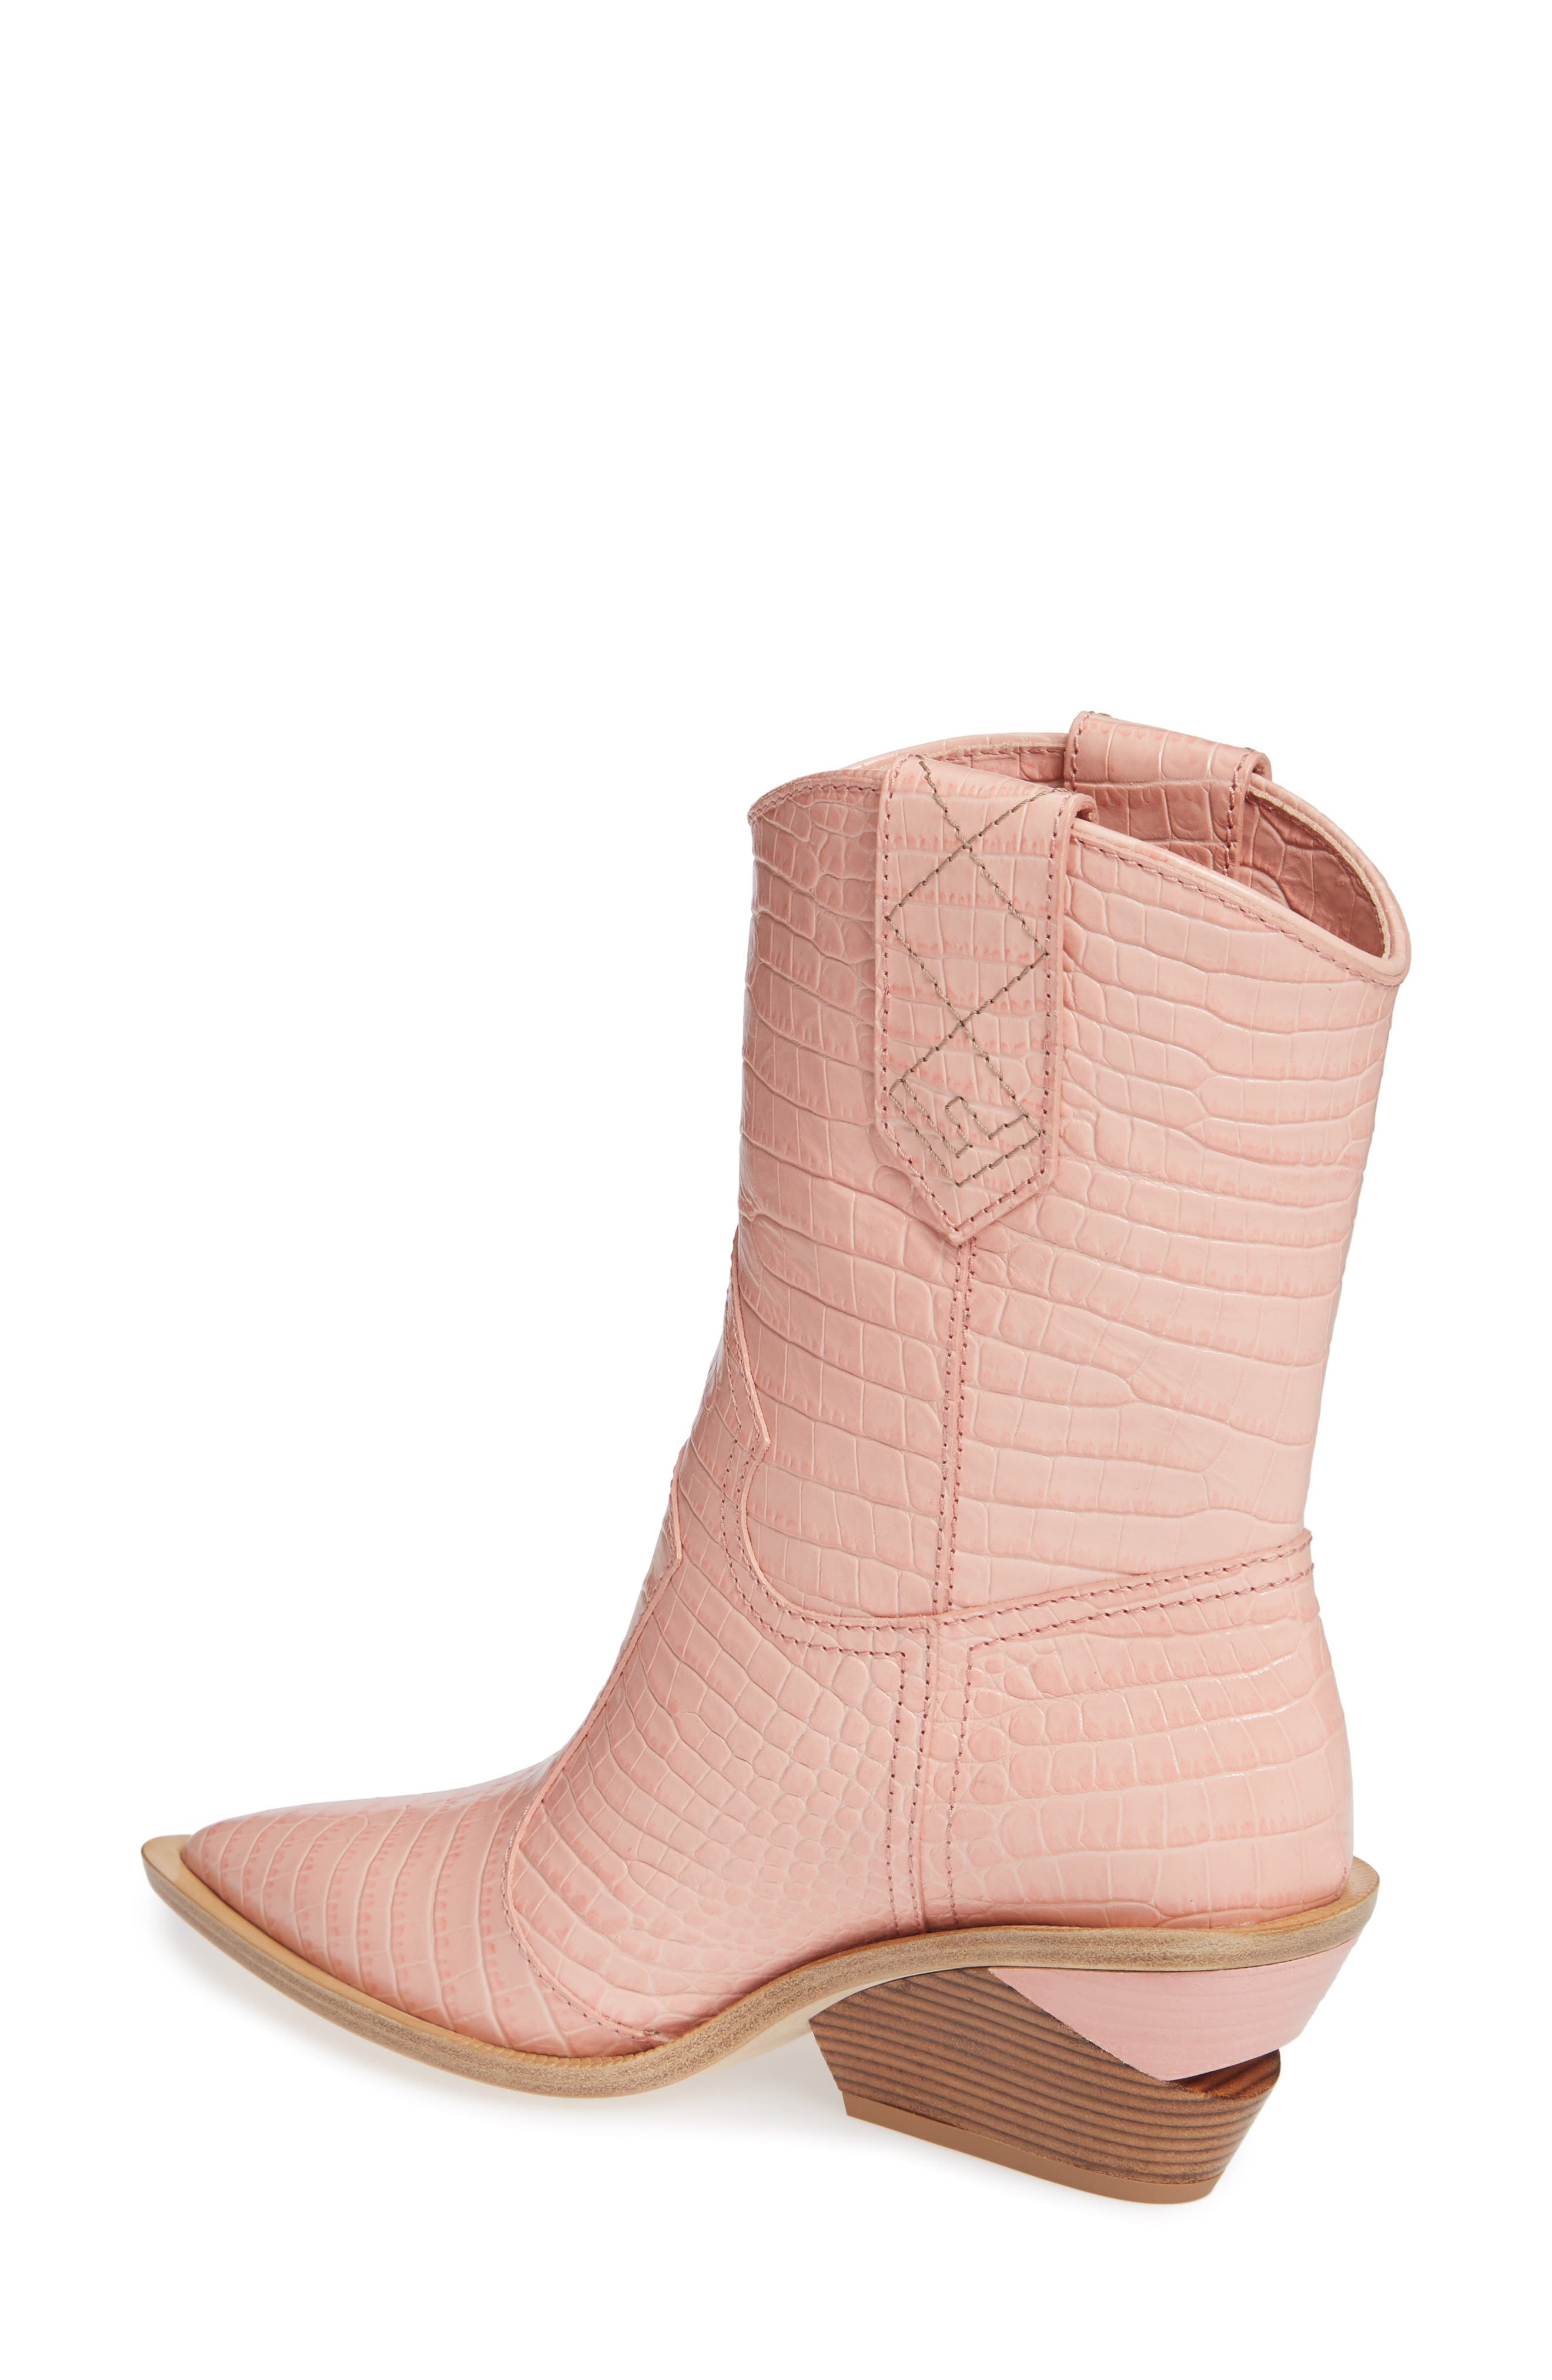 Cutwalk Mid Boot,                             Alternate thumbnail 2, color,                             BABY PINK